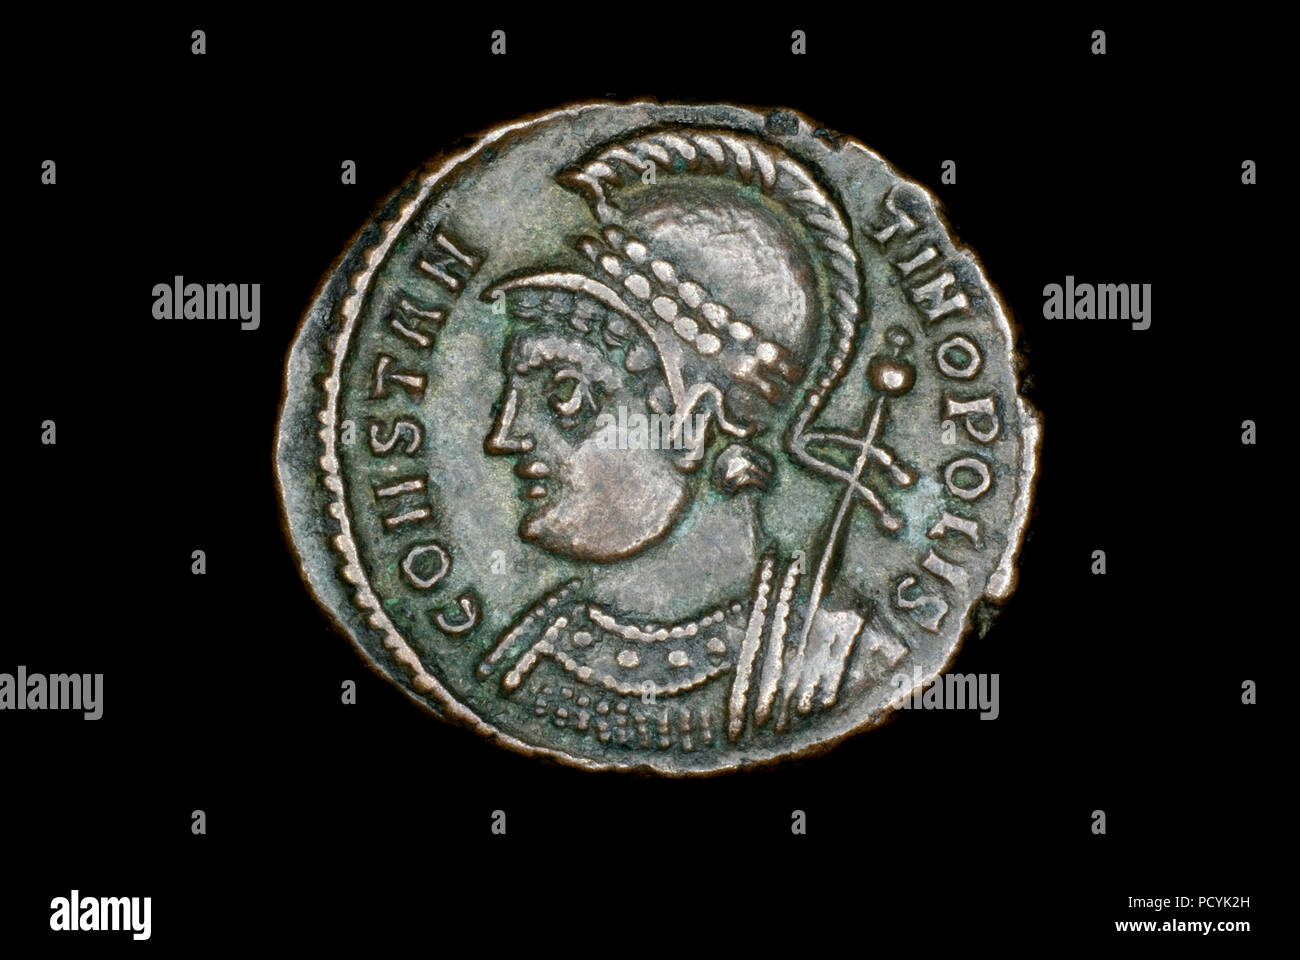 Roman city commemorative coin for the founding of Constantinople - Stock Image